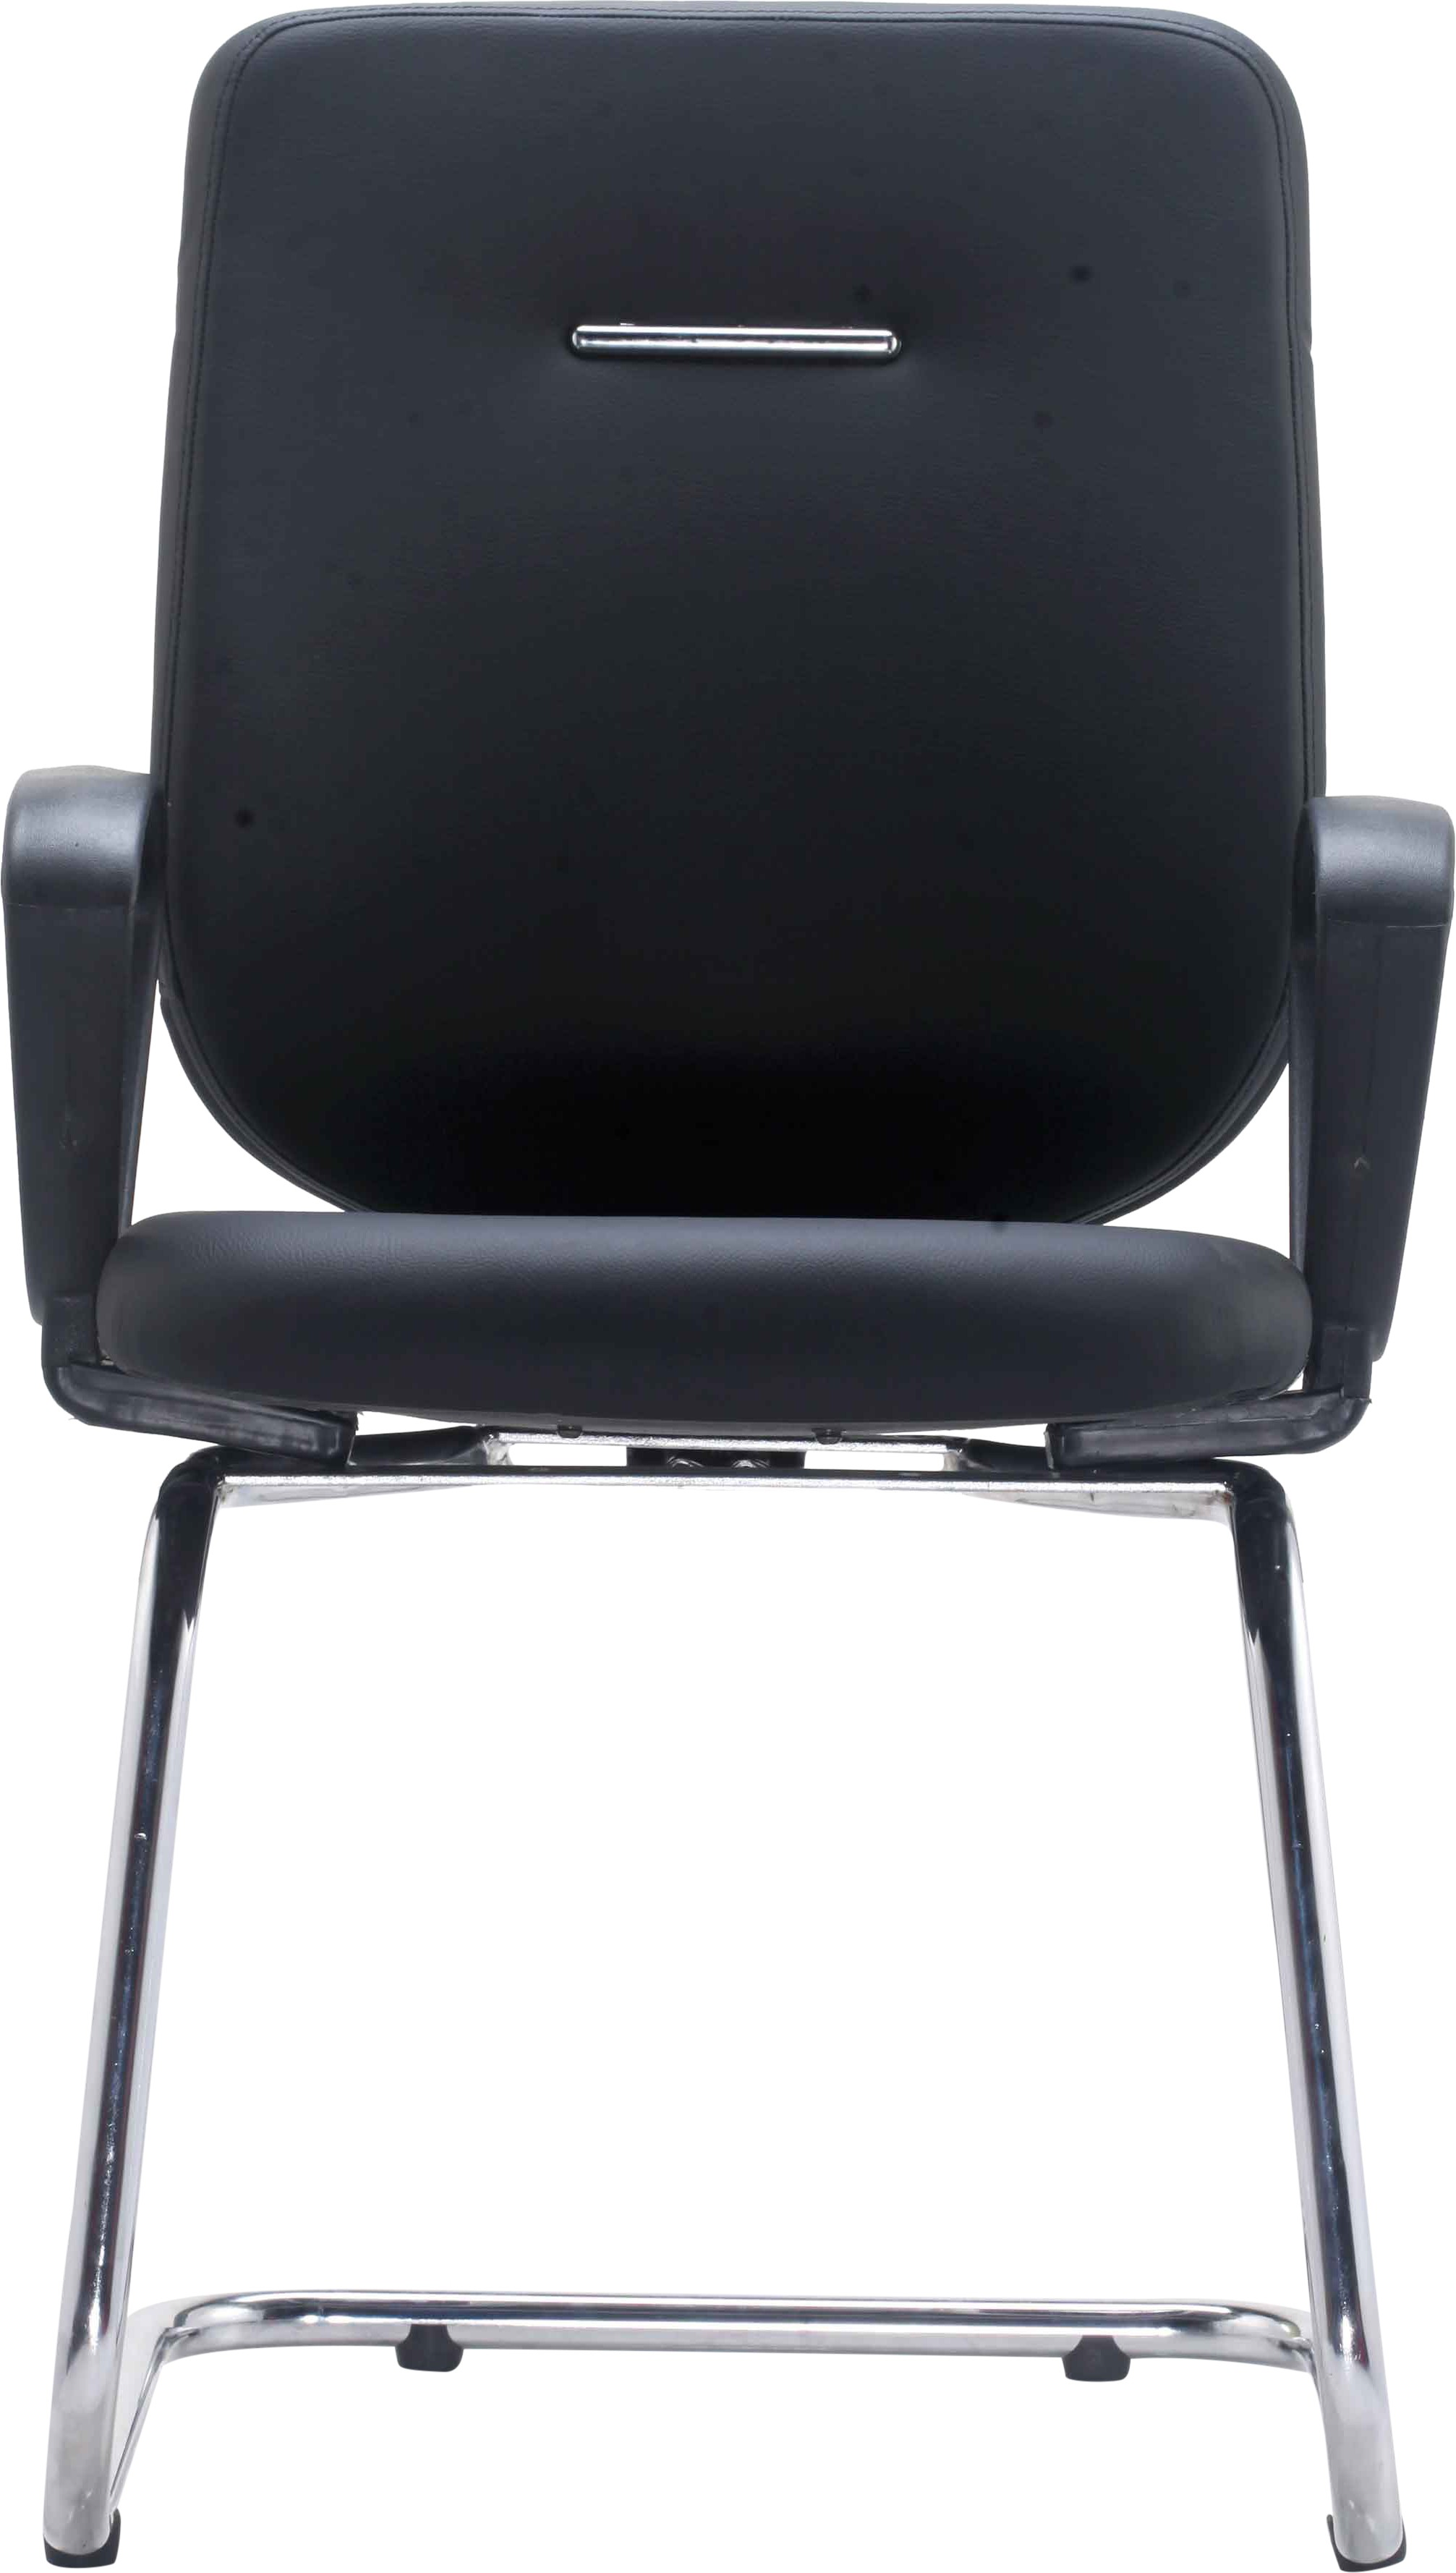 View Bluebell Ebuzz Visitor Fabric Office Chair(Black) Furniture (Bluebell)